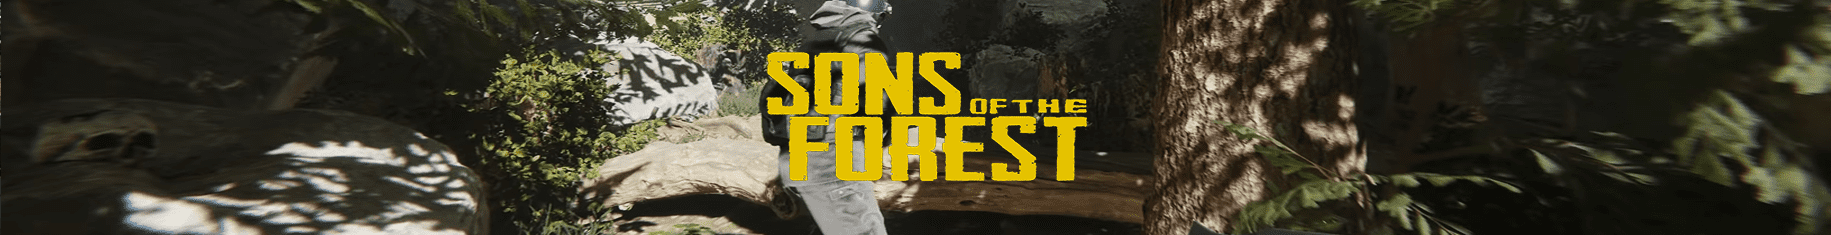 sons-of-the-forest-info-banner-gtxgaming-101